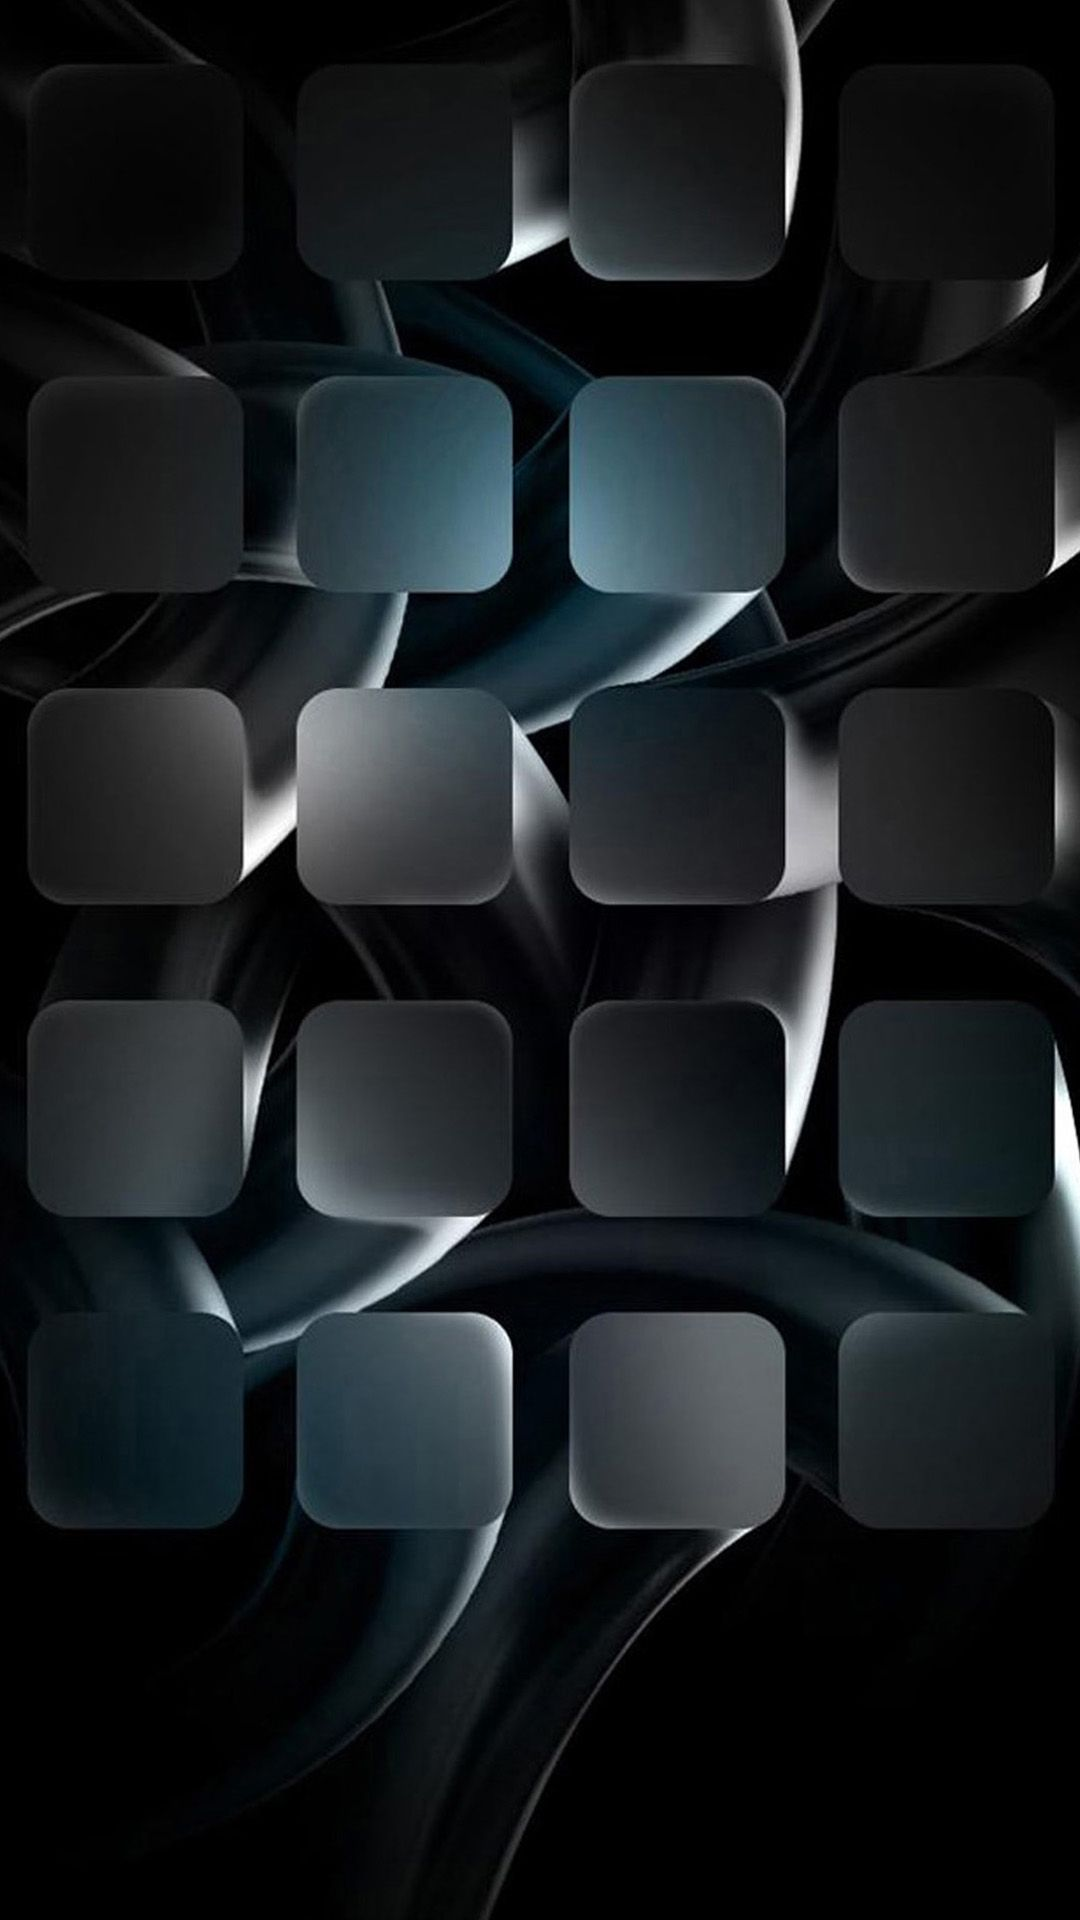 New Iphone Wallpaper Iphone Wallpaper Black Phone Wallpaper Homescreen Iphone Samsung Wallpaper